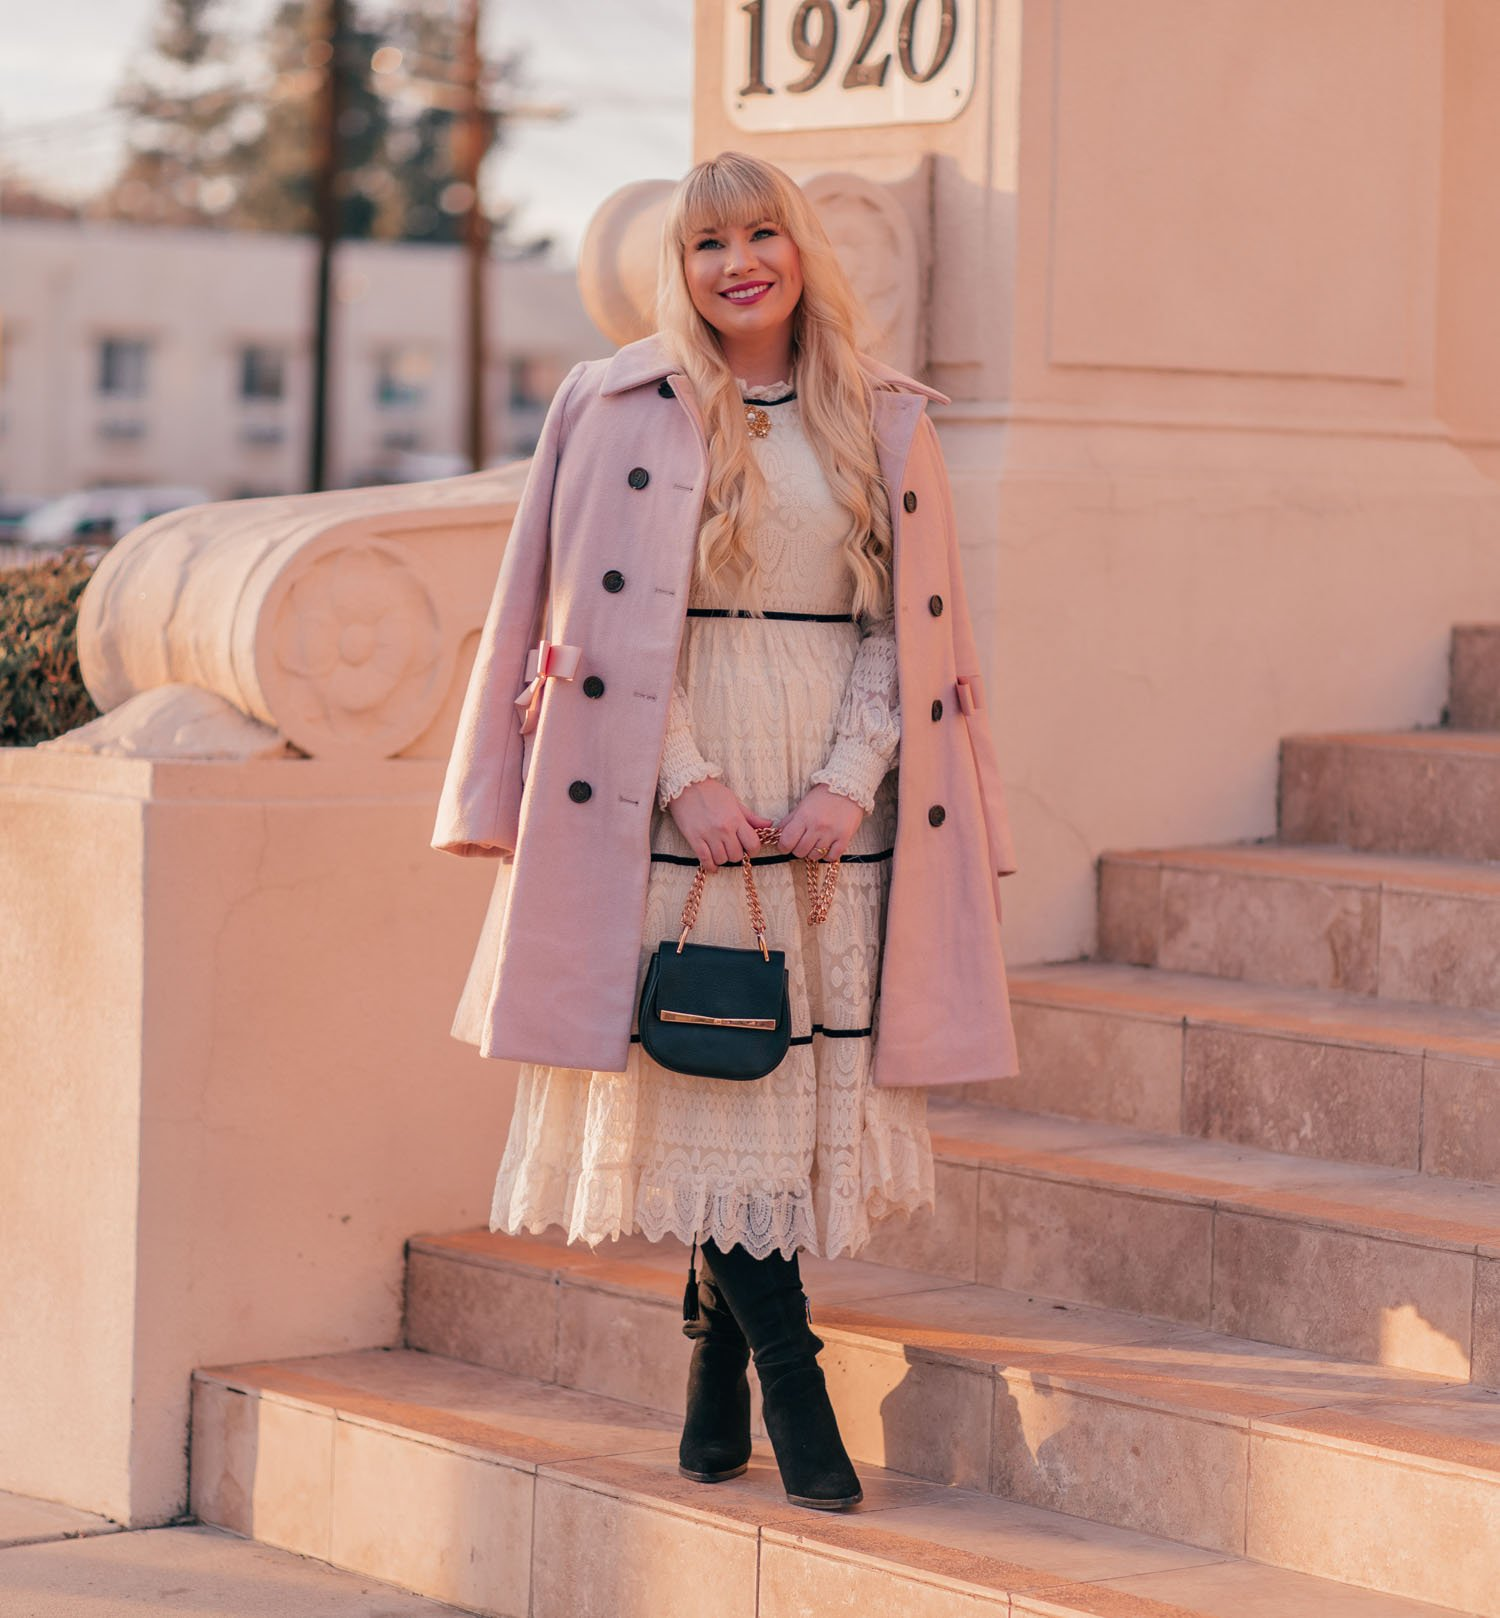 Feminine Fashion Blogger Elizabeth Hugen of Lizzie in Lace shares a girly Valentine's Day Outfit with a pink coat and white lace Chicwish dress along with her January 2021 Month in Review